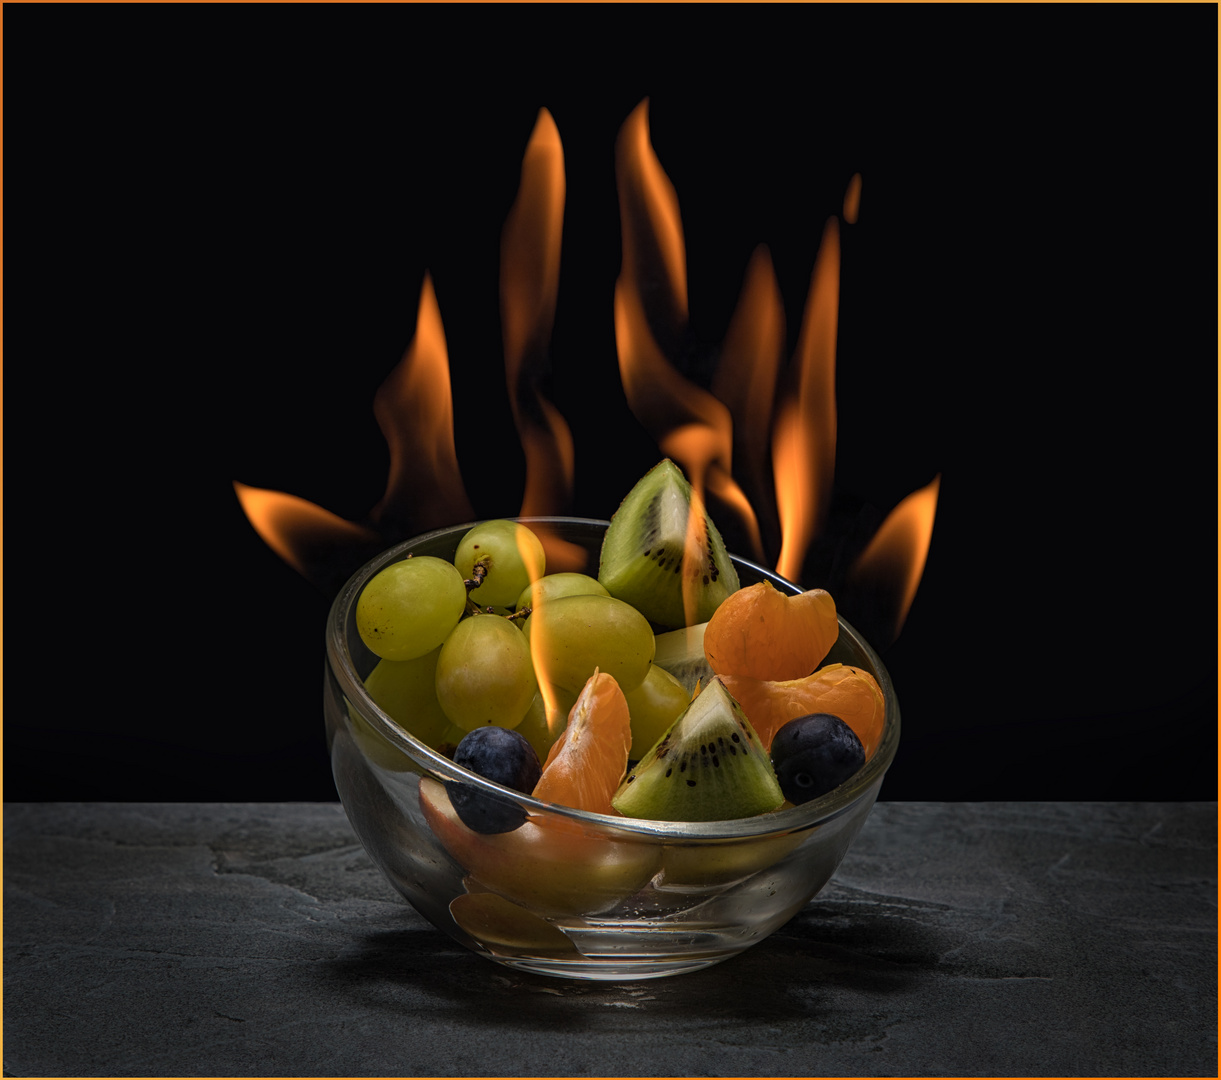 flambiertes Obst